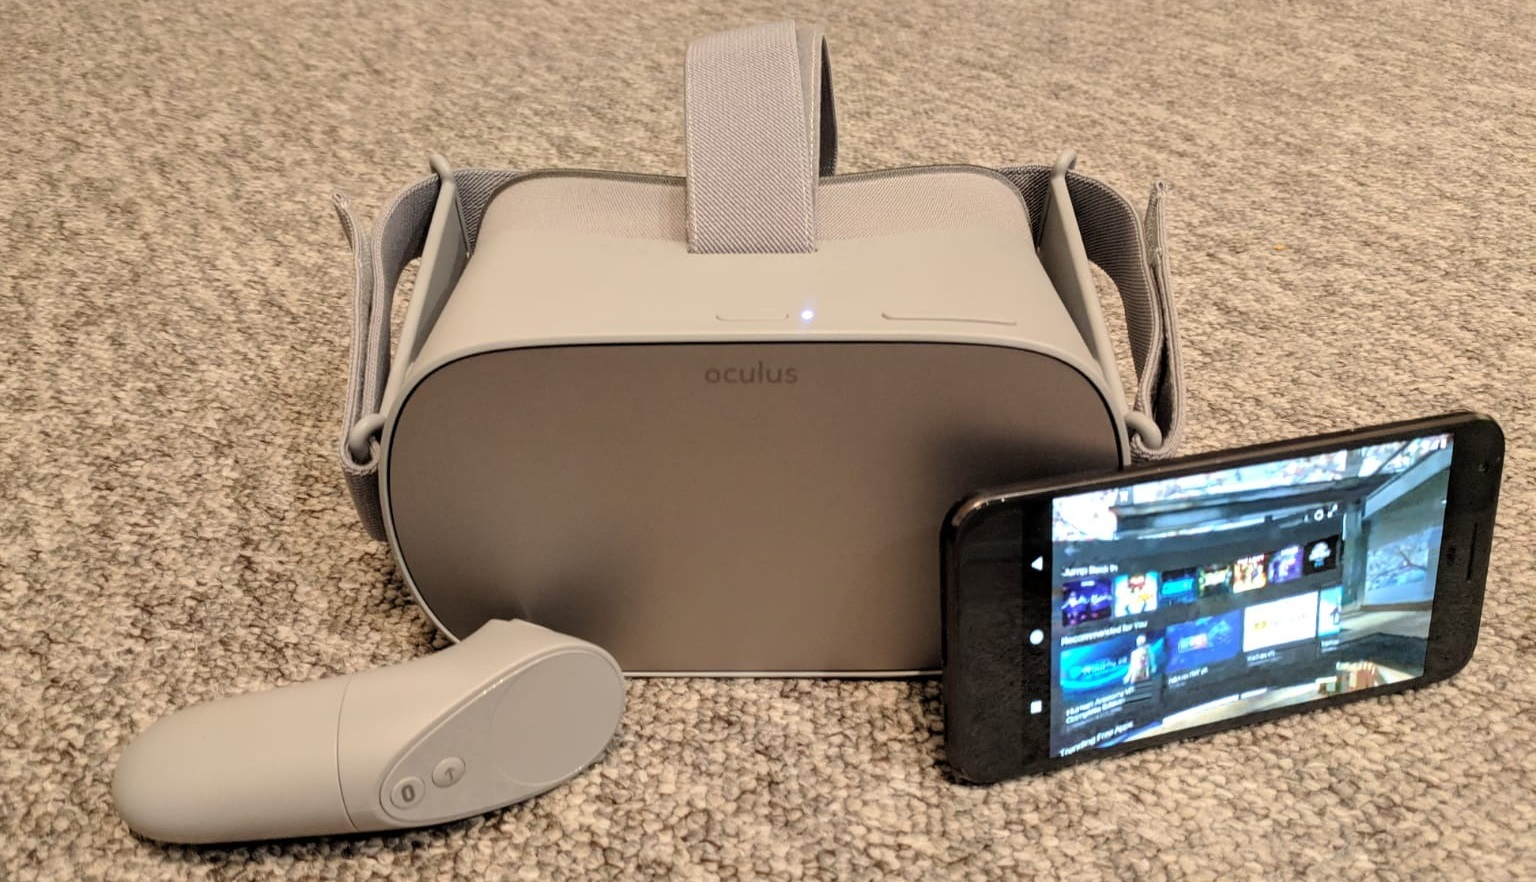 Oculus Go casting vr mobile standalone